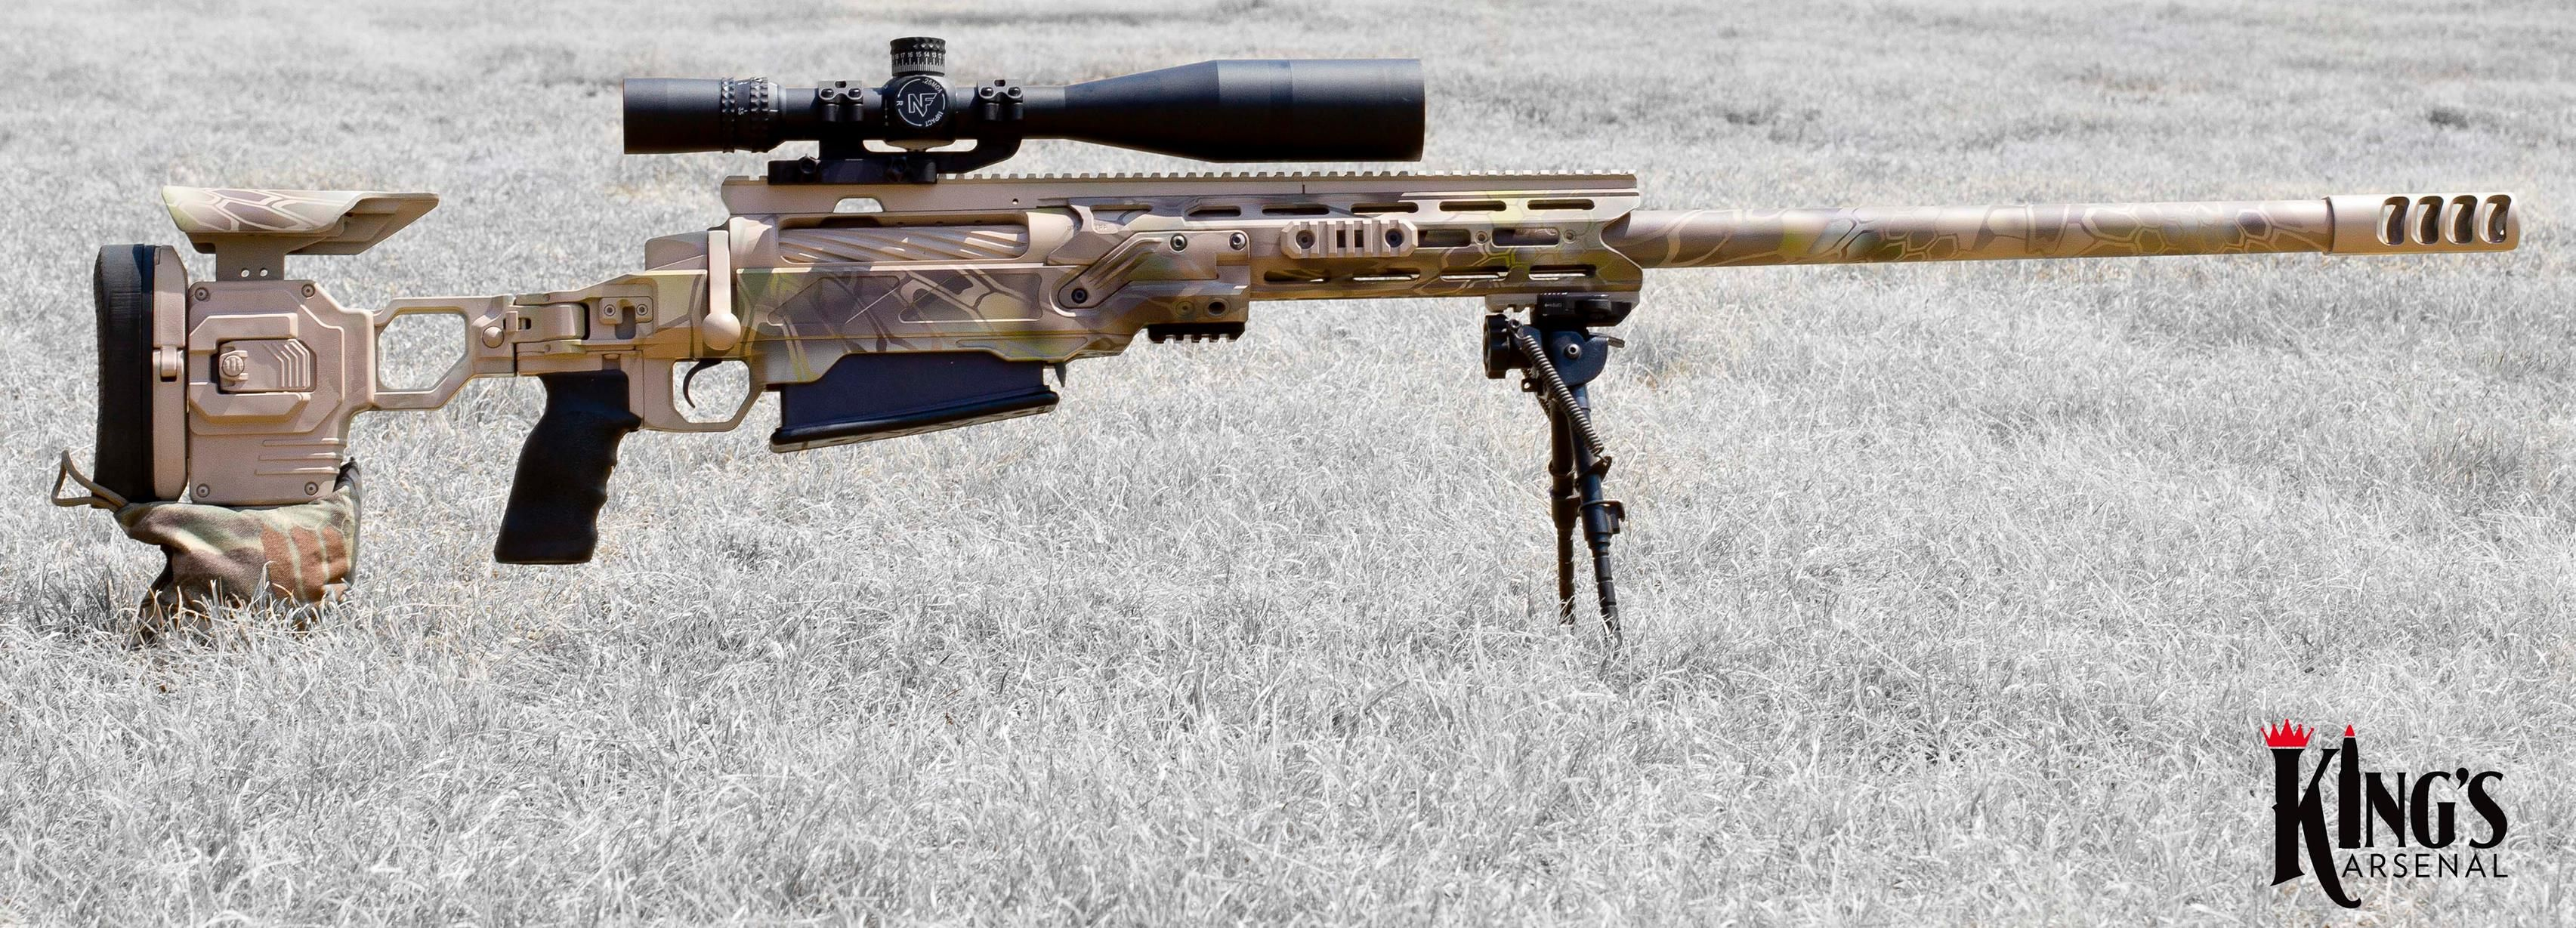 Kings Arsenal XKaliber 50 BMG in a Cadex Defense Chassis